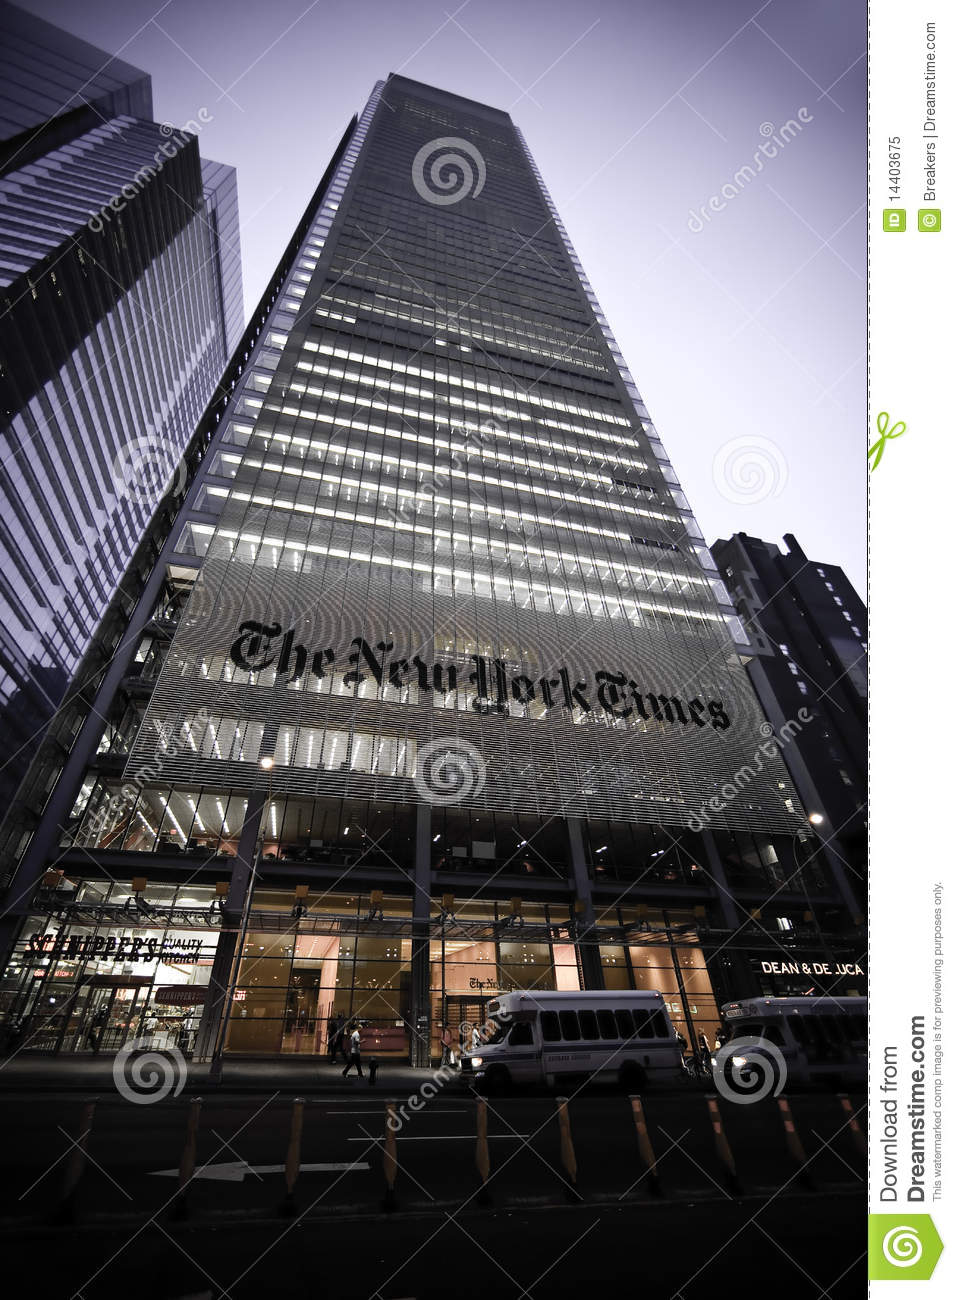 The New York Times Building Editorial Image Image 14403675